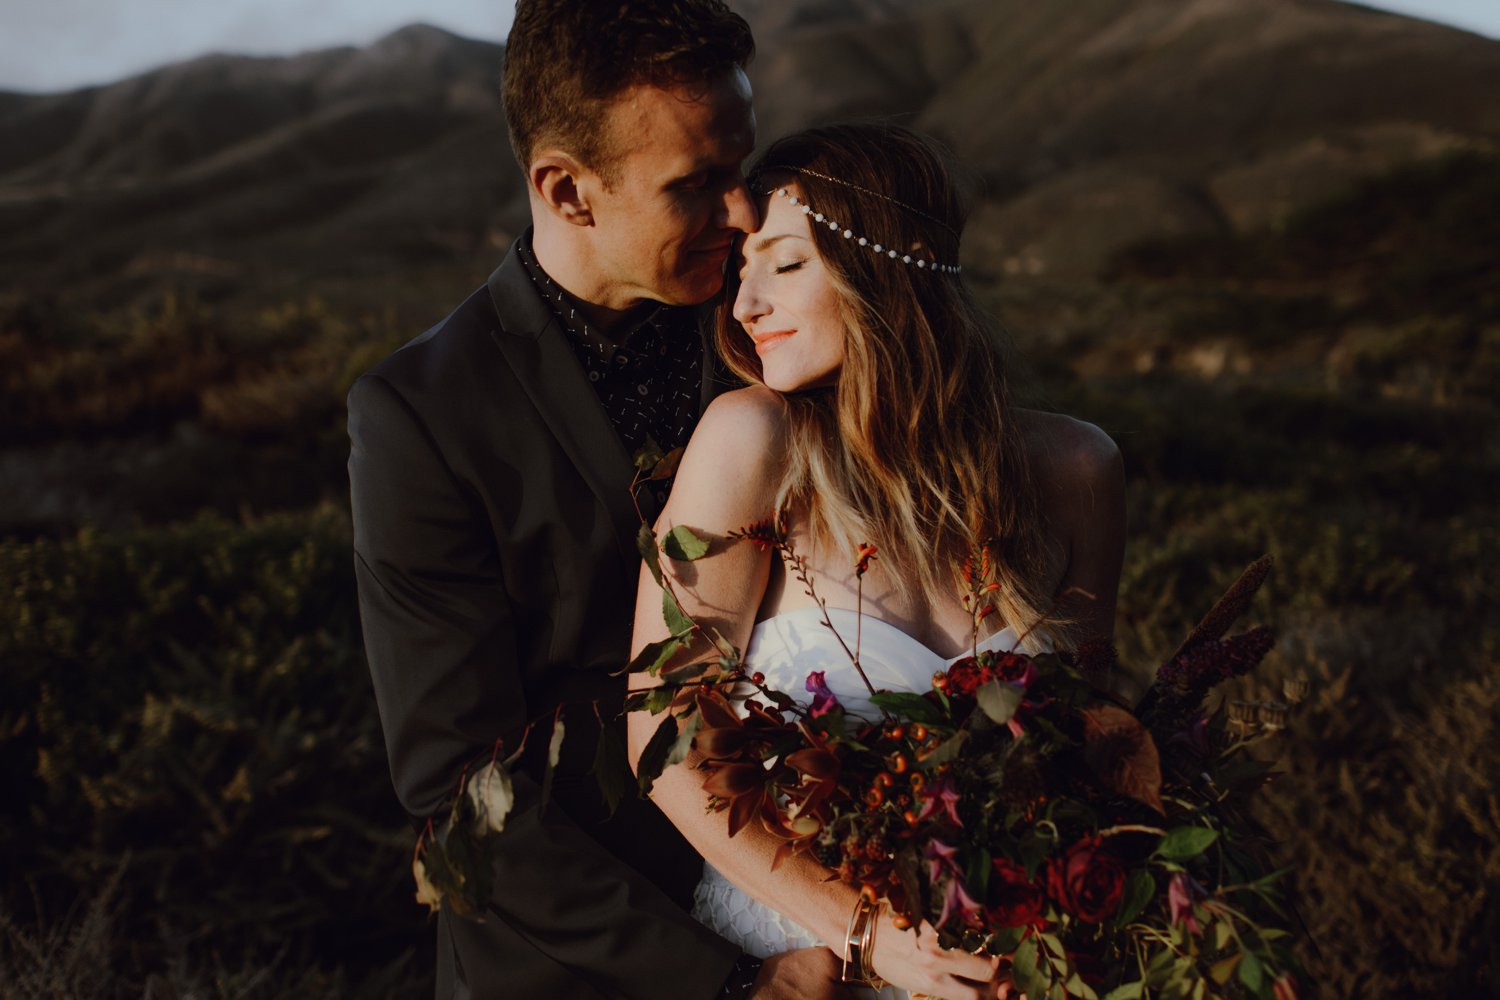 A wedding portrait by Catalina Jean Photography